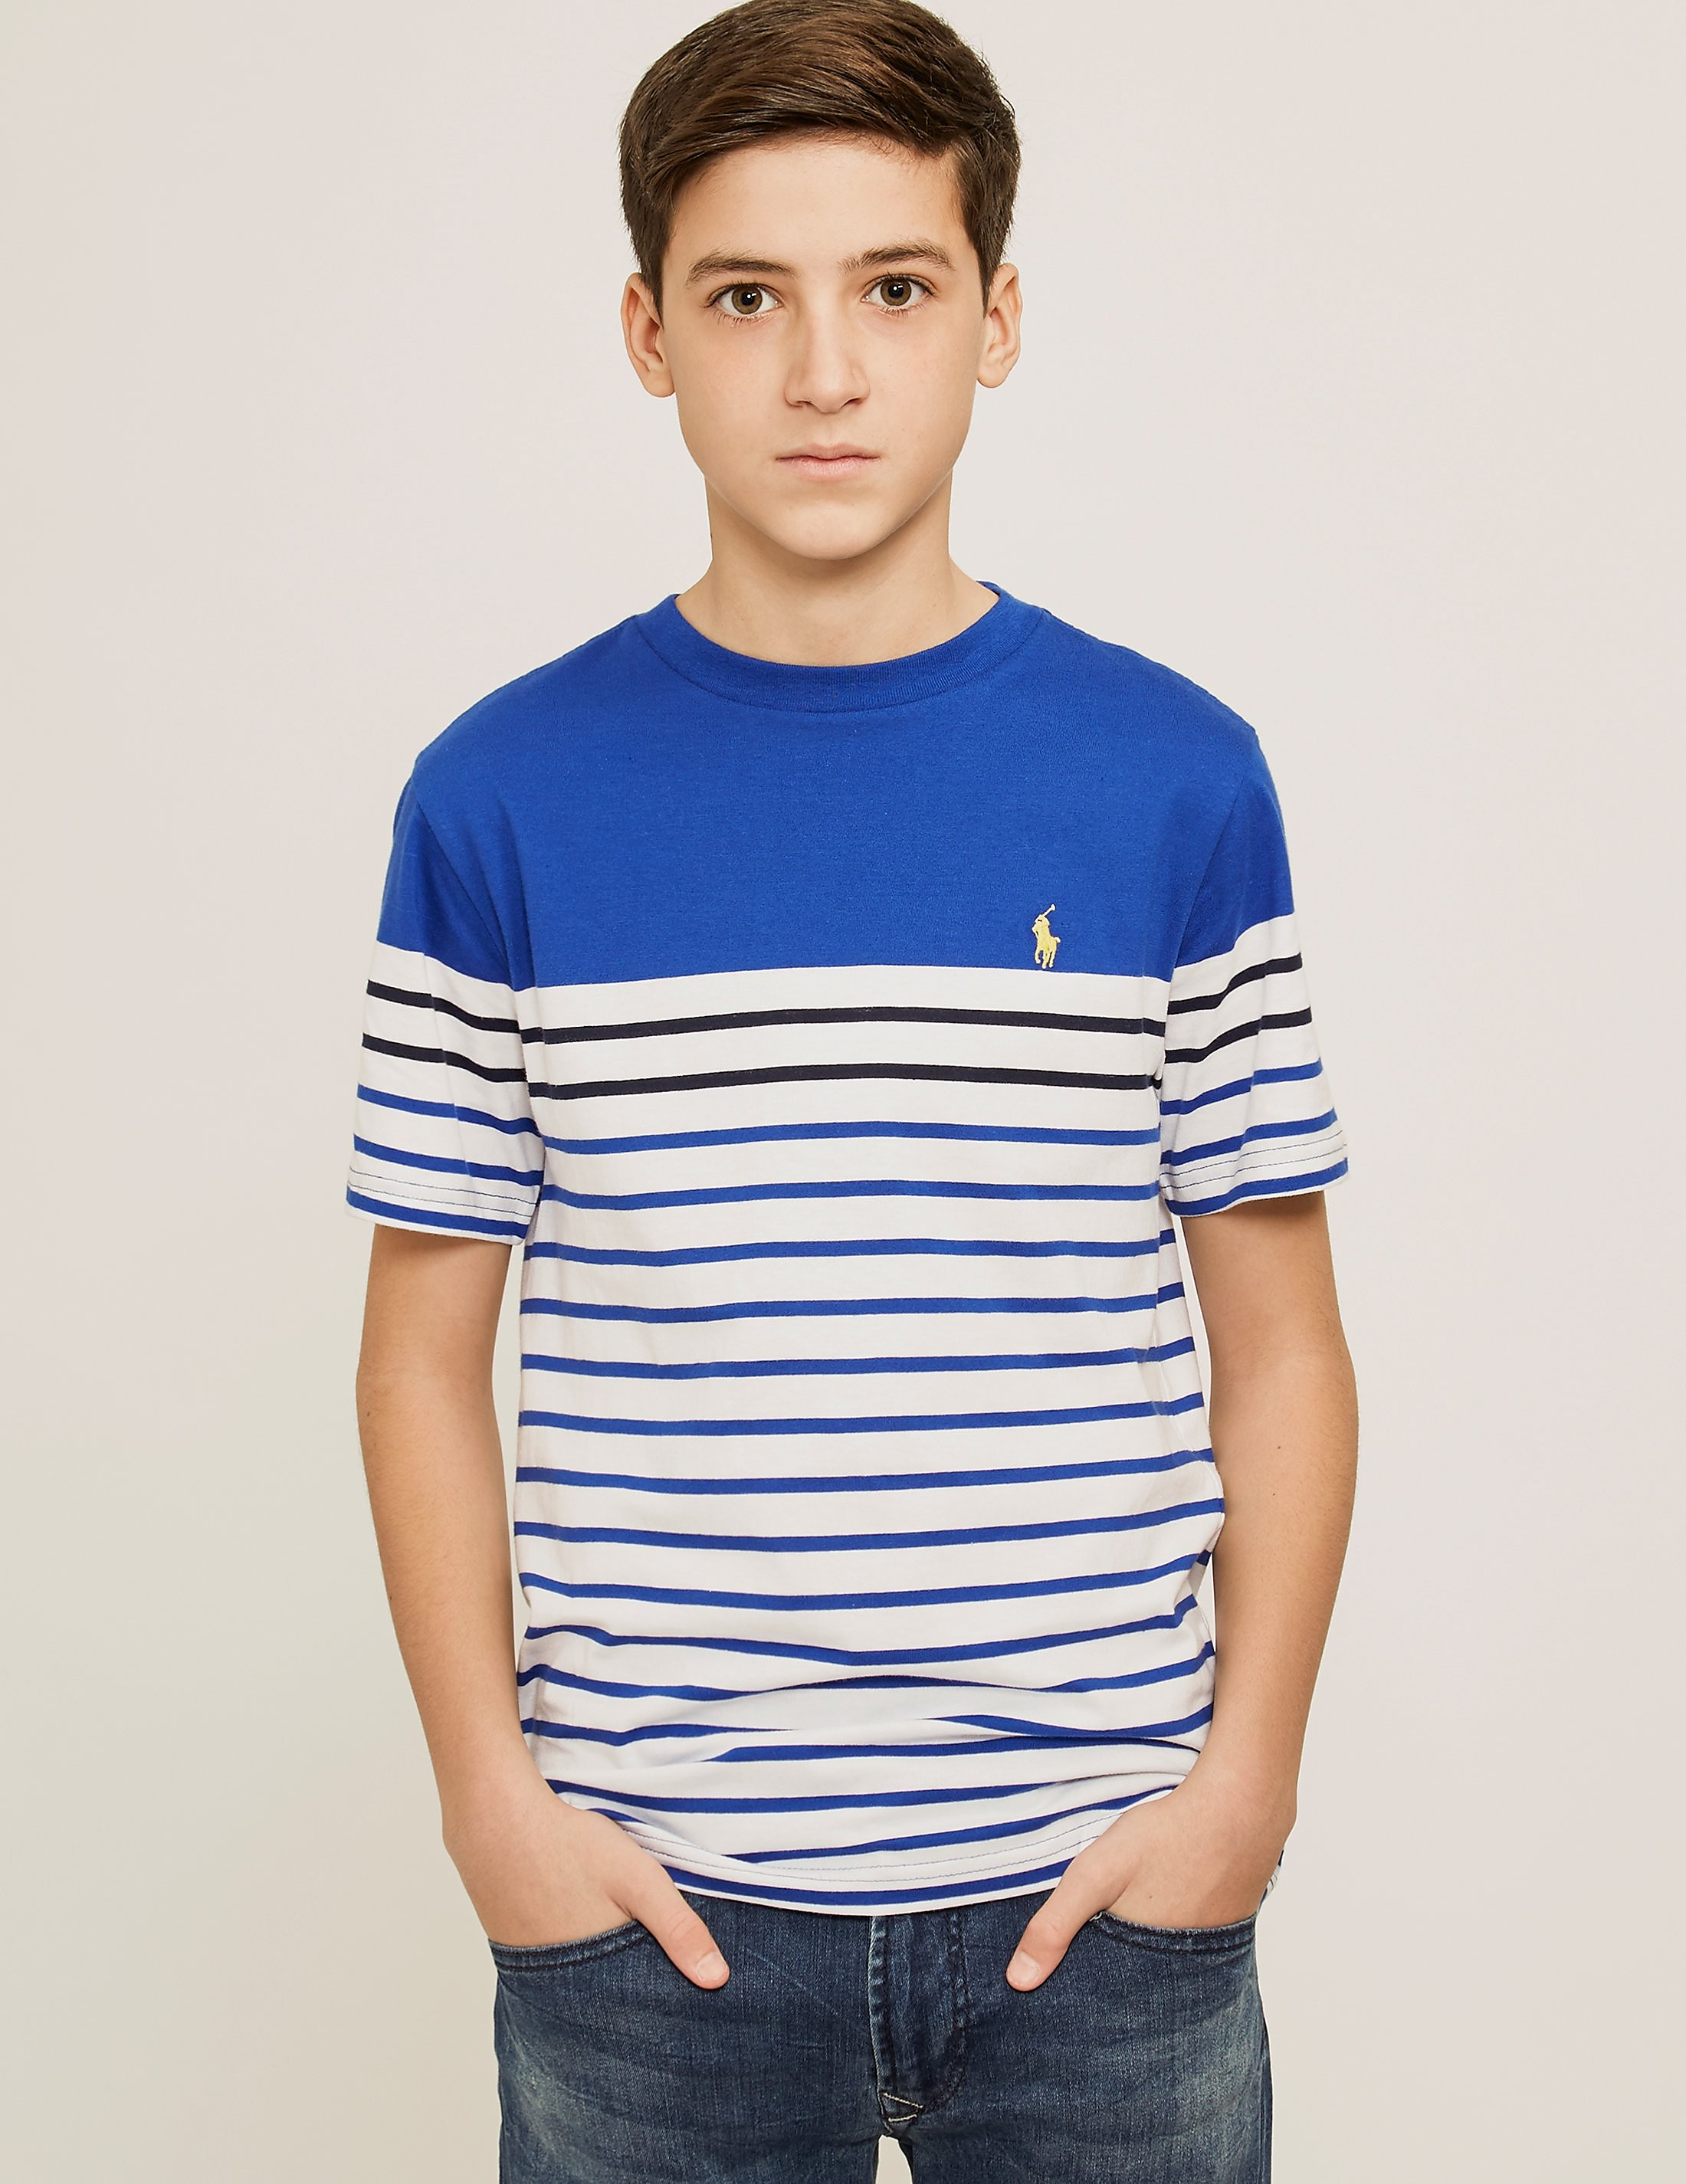 Polo Ralph Lauren Stripe Crew T-Shirt